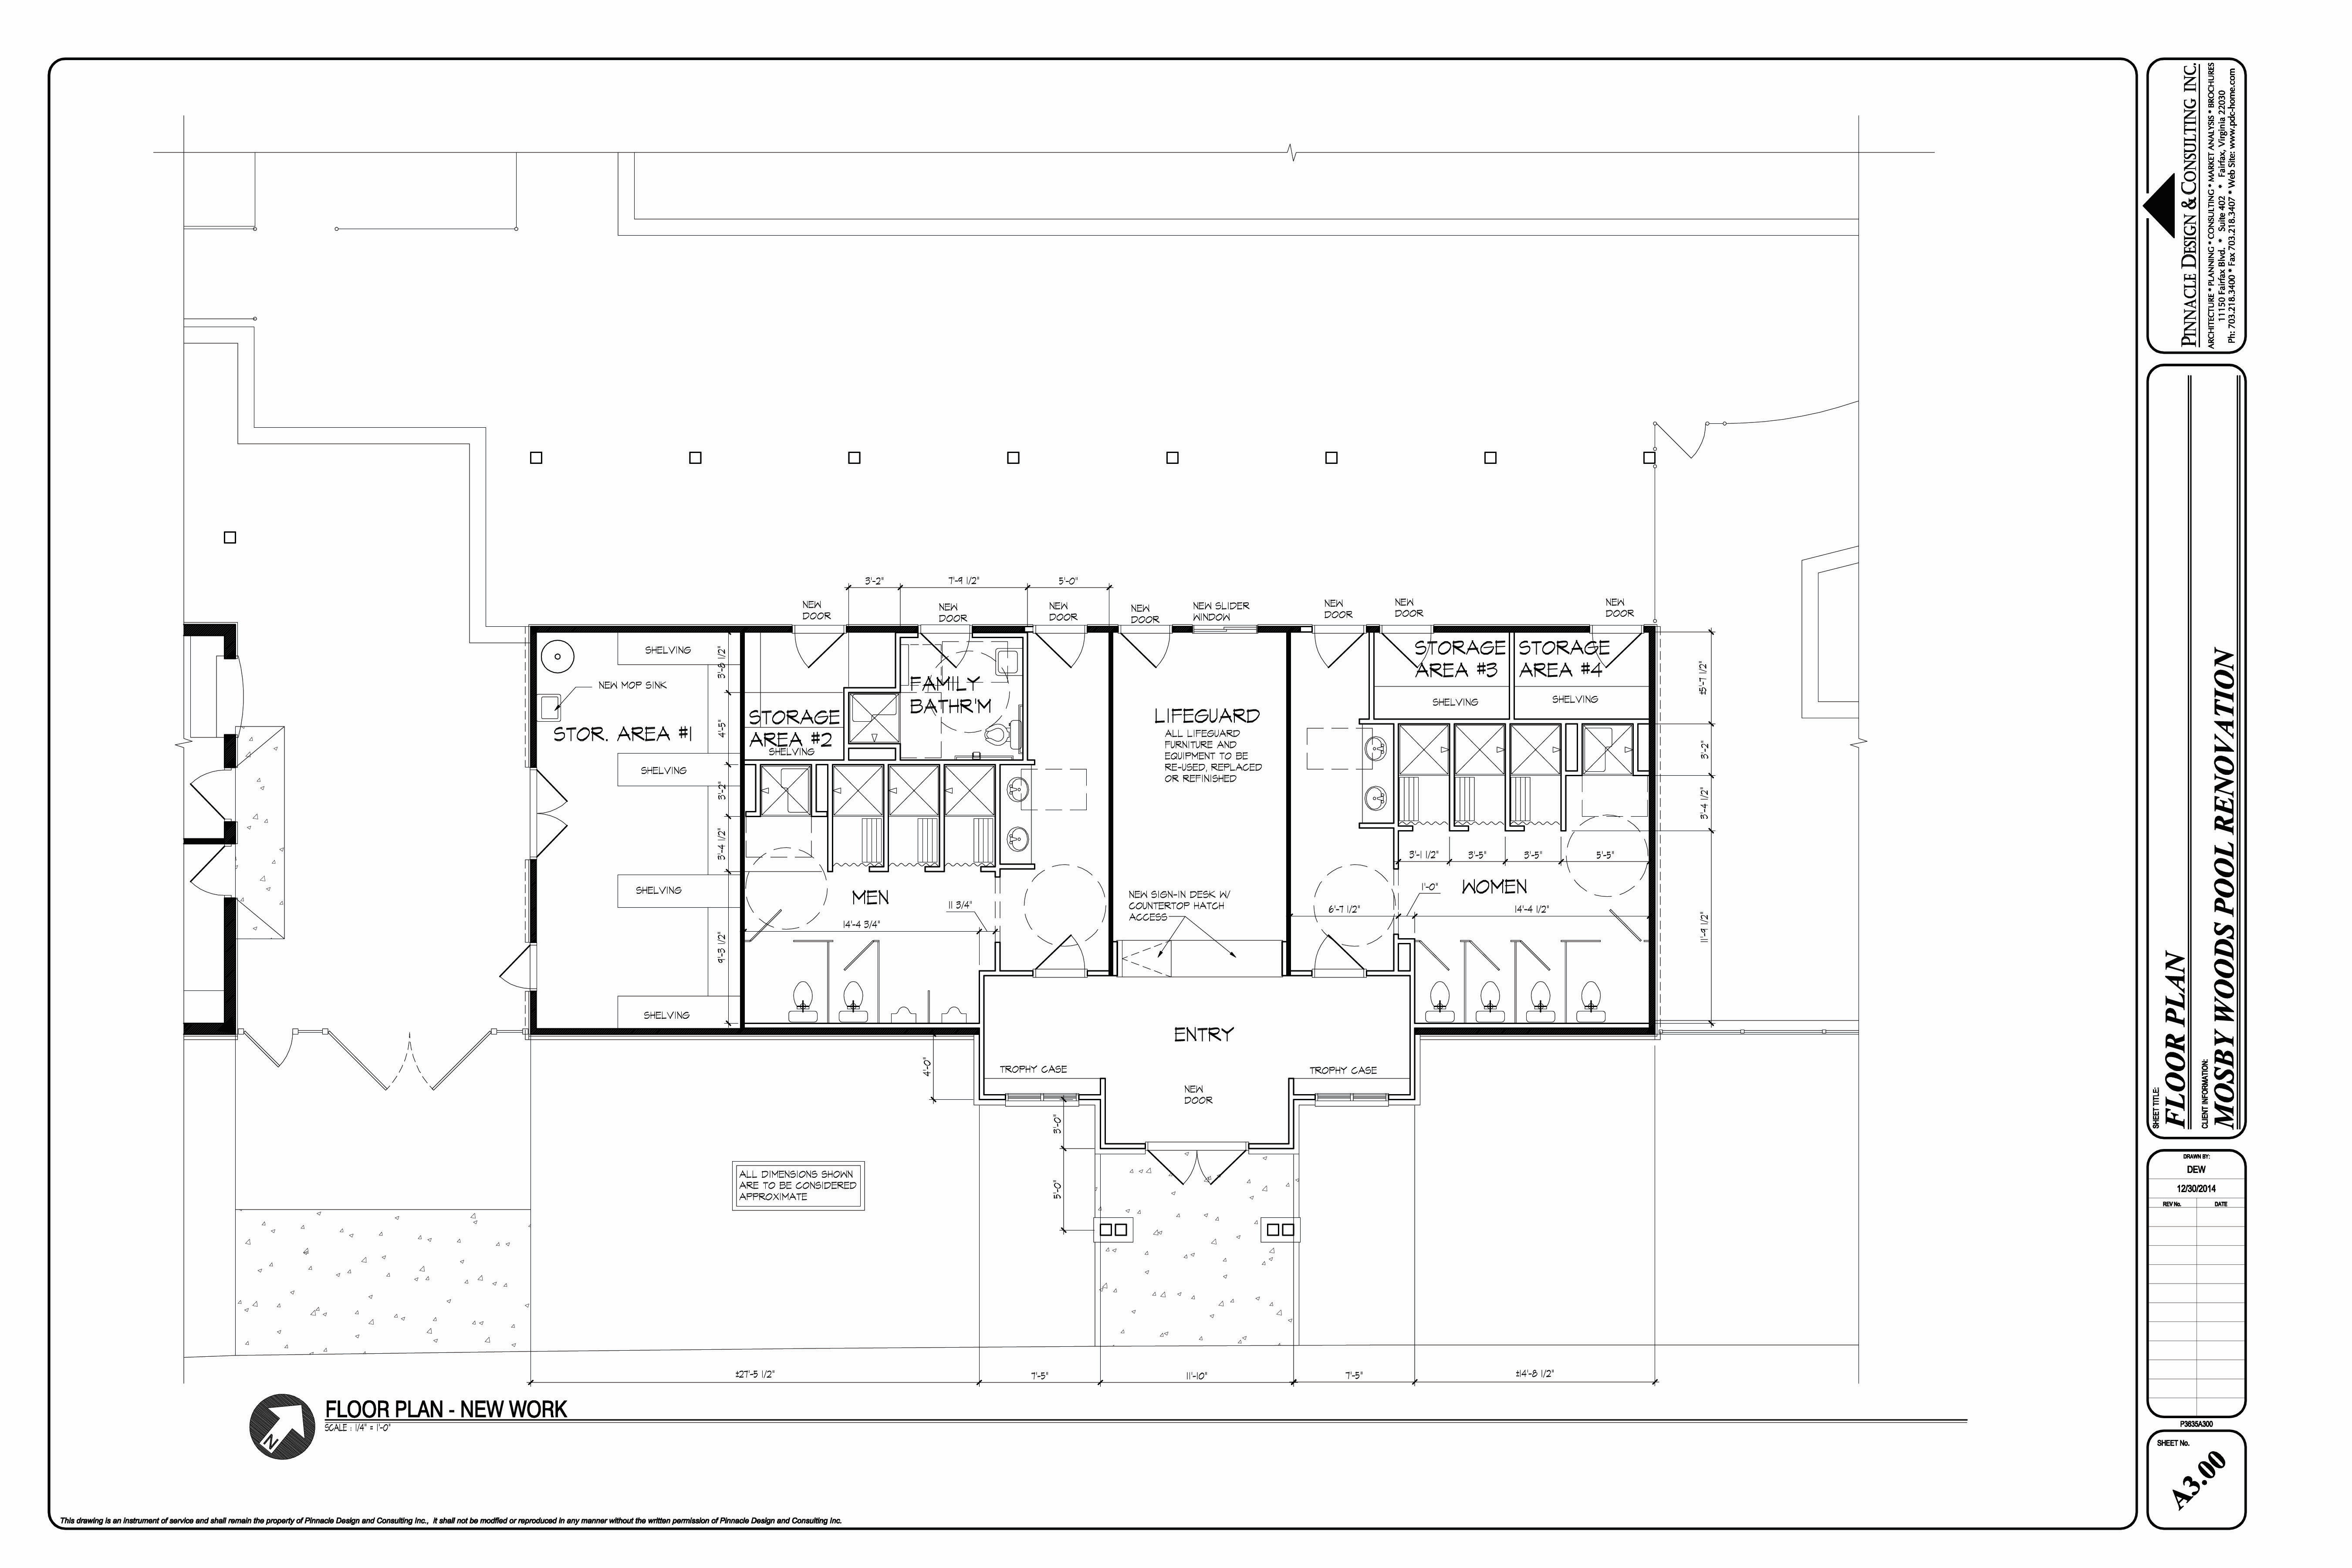 plans for renovated pool house and grounds mosby woods pool rendering full site pool house